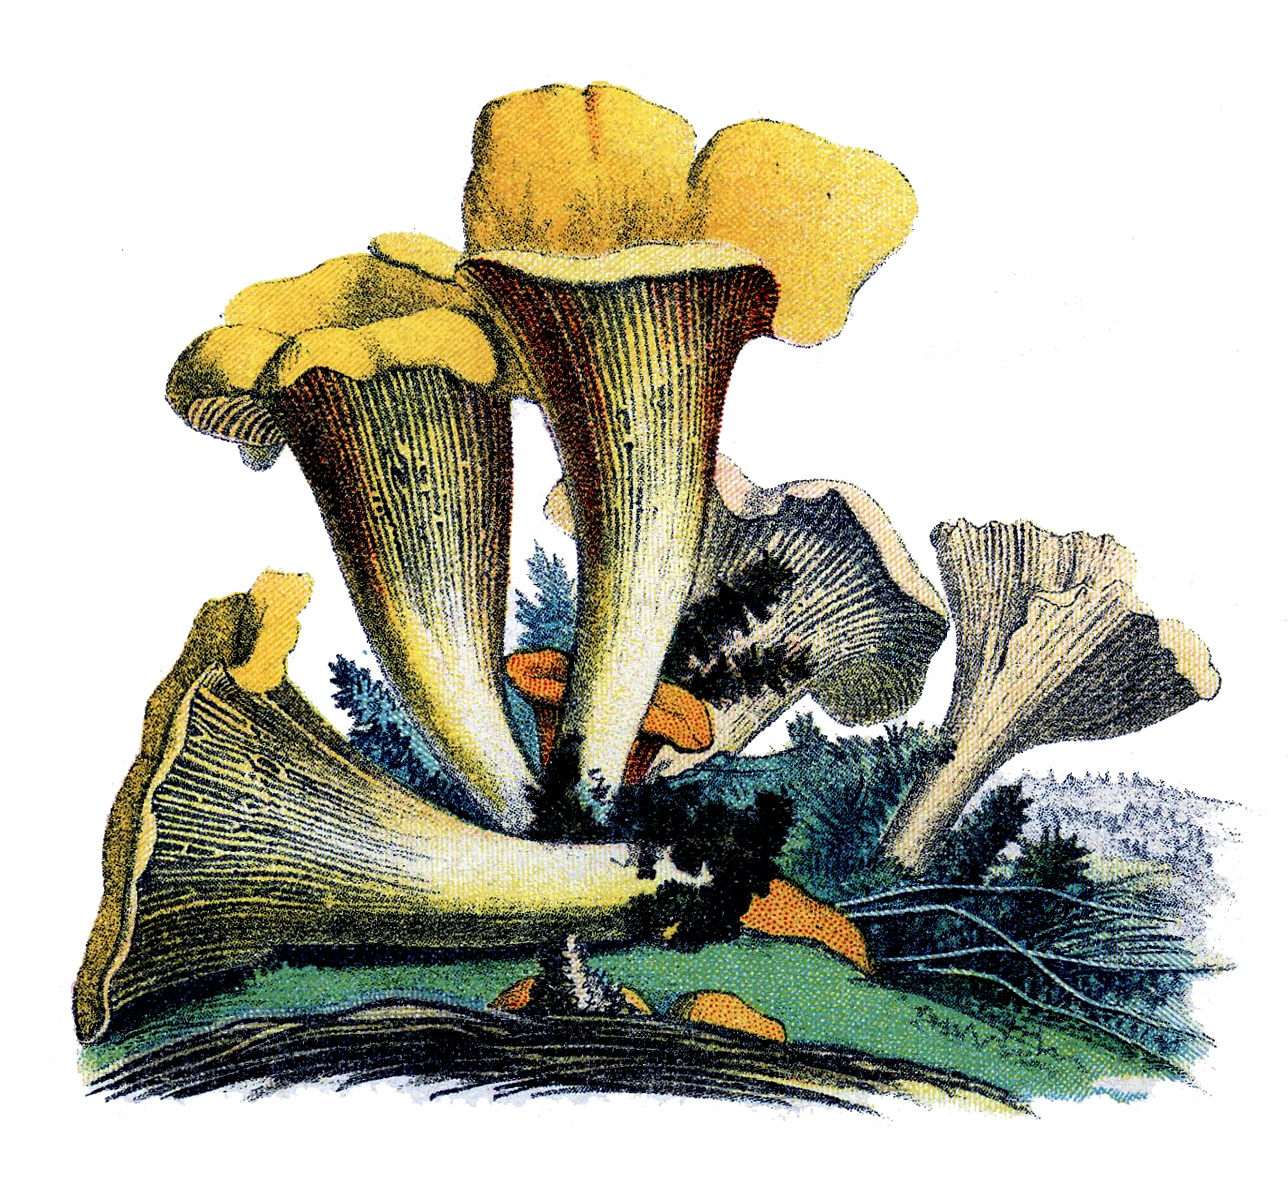 mushrooms+yellow+vintage+image-graphicsfairy